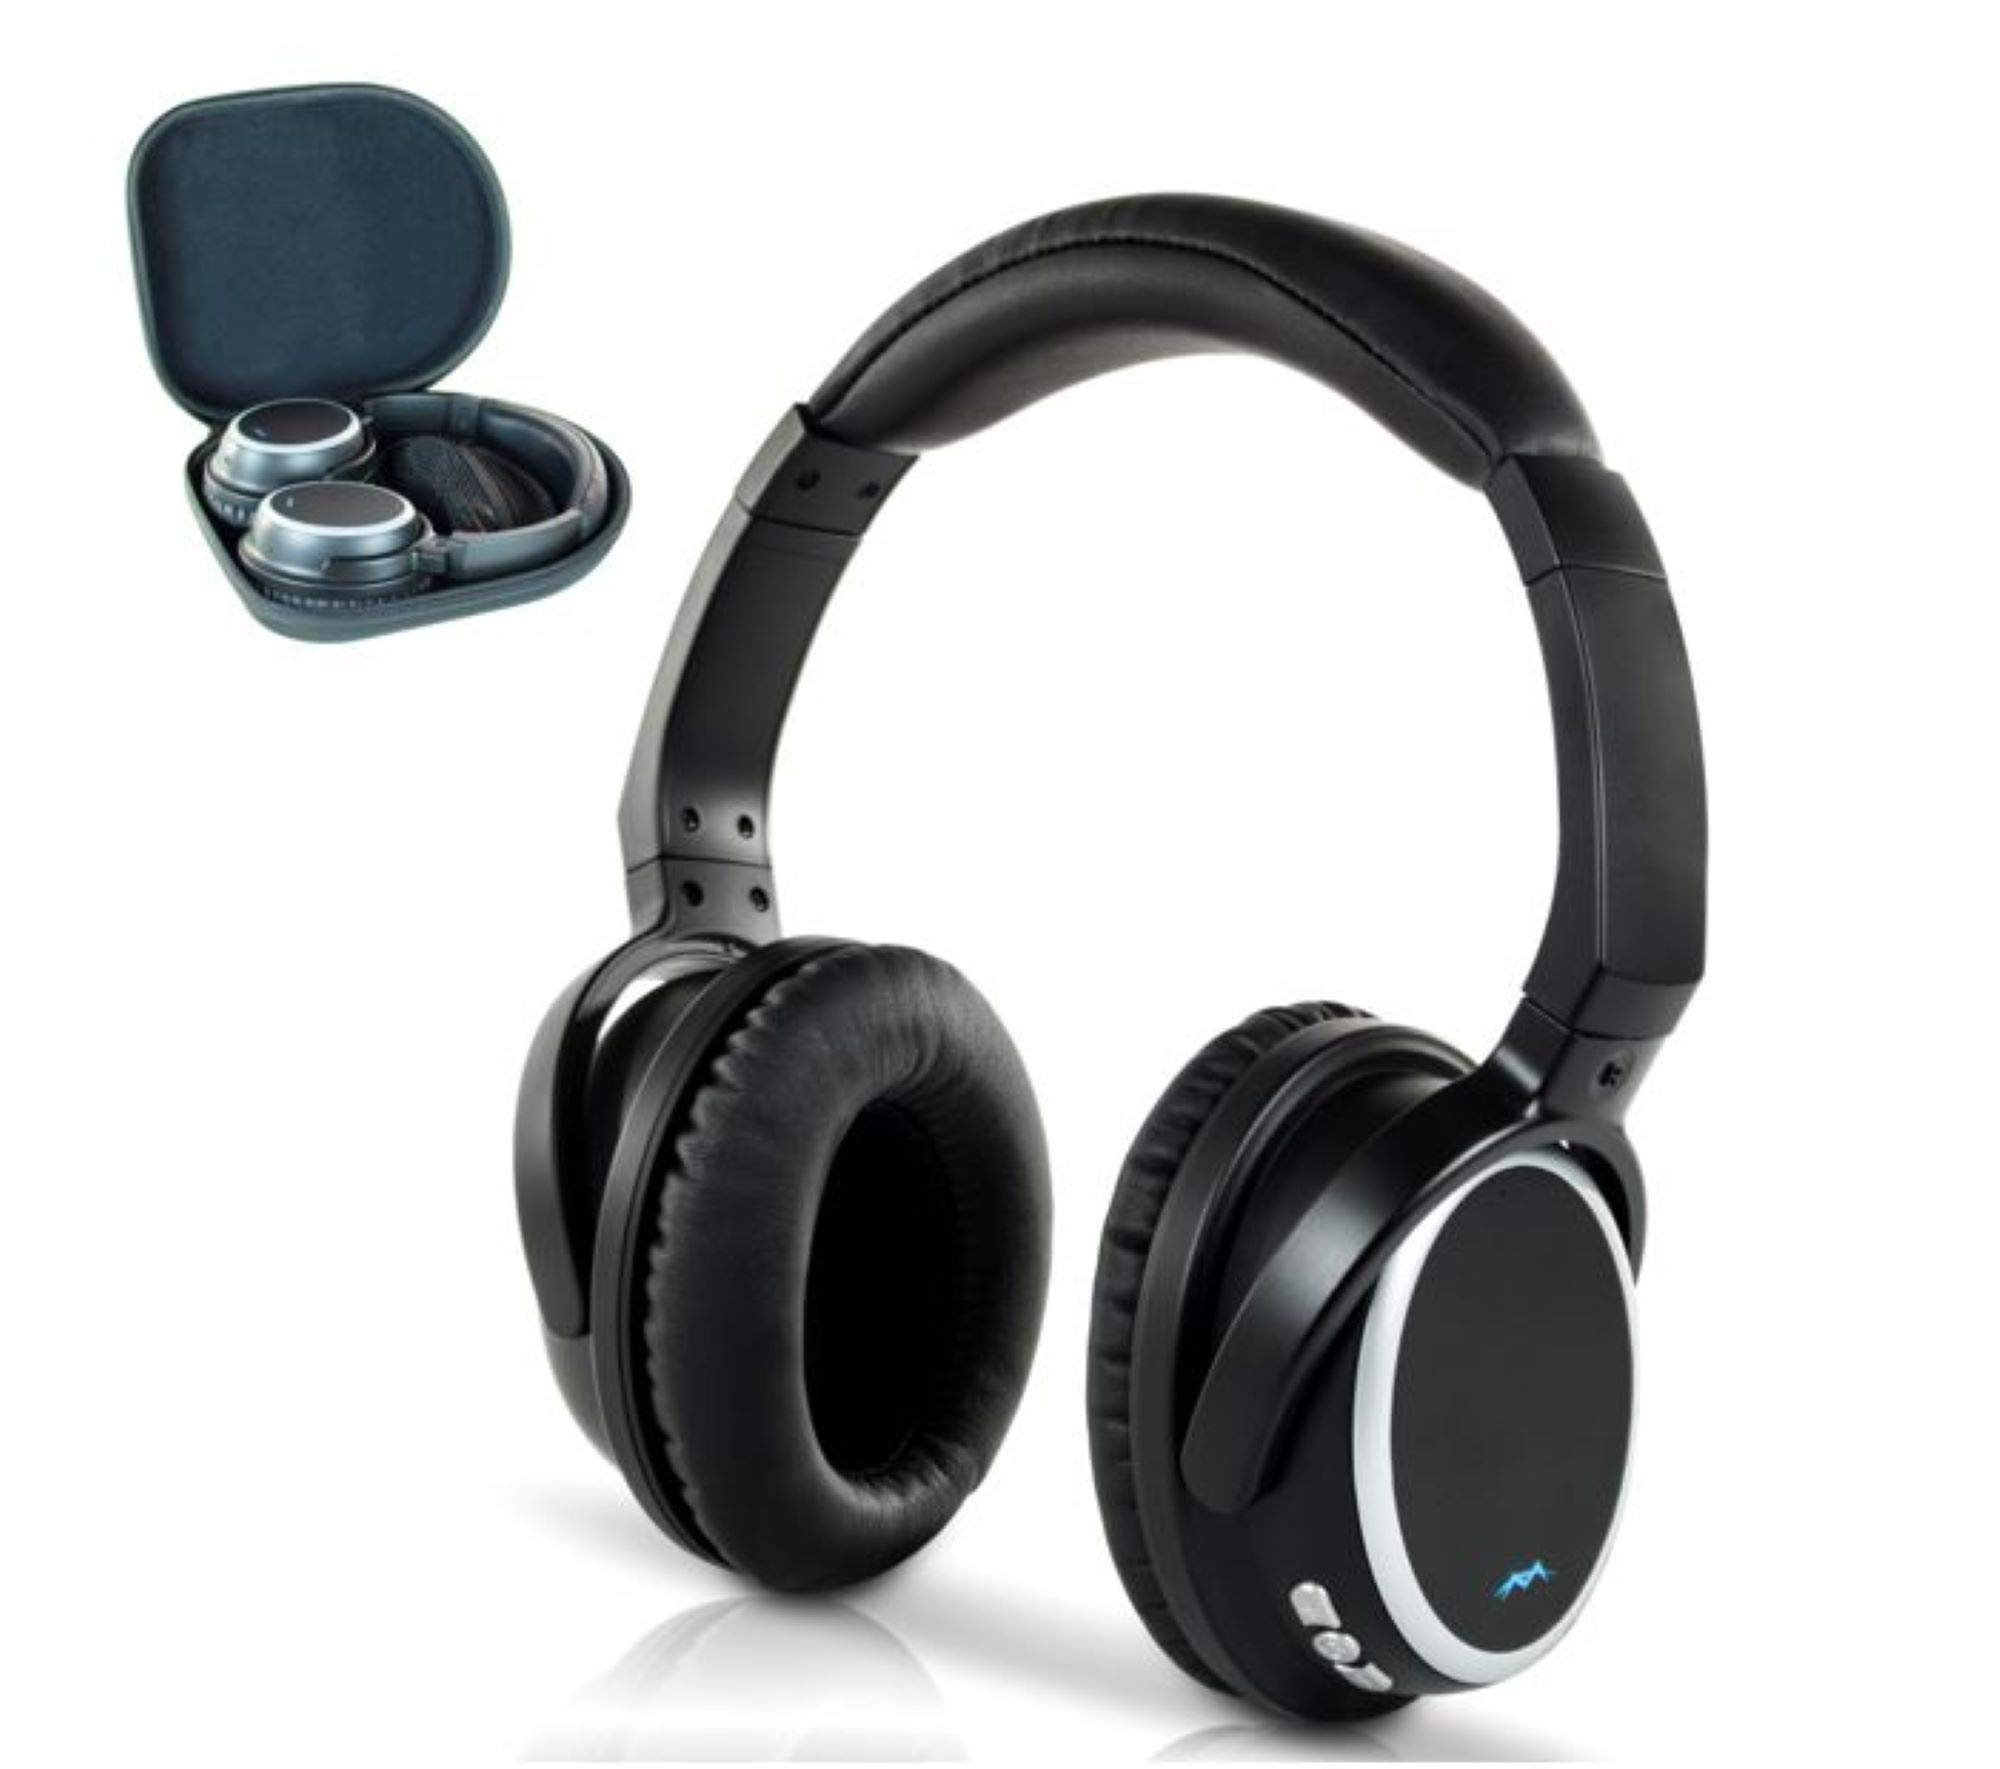 Auriculares Miccus [Upgraded] Inalambrico TV Confortable Hi Fi Bluetooth 5 Over-Ear NO DELAY aptx Low Latency Headset co